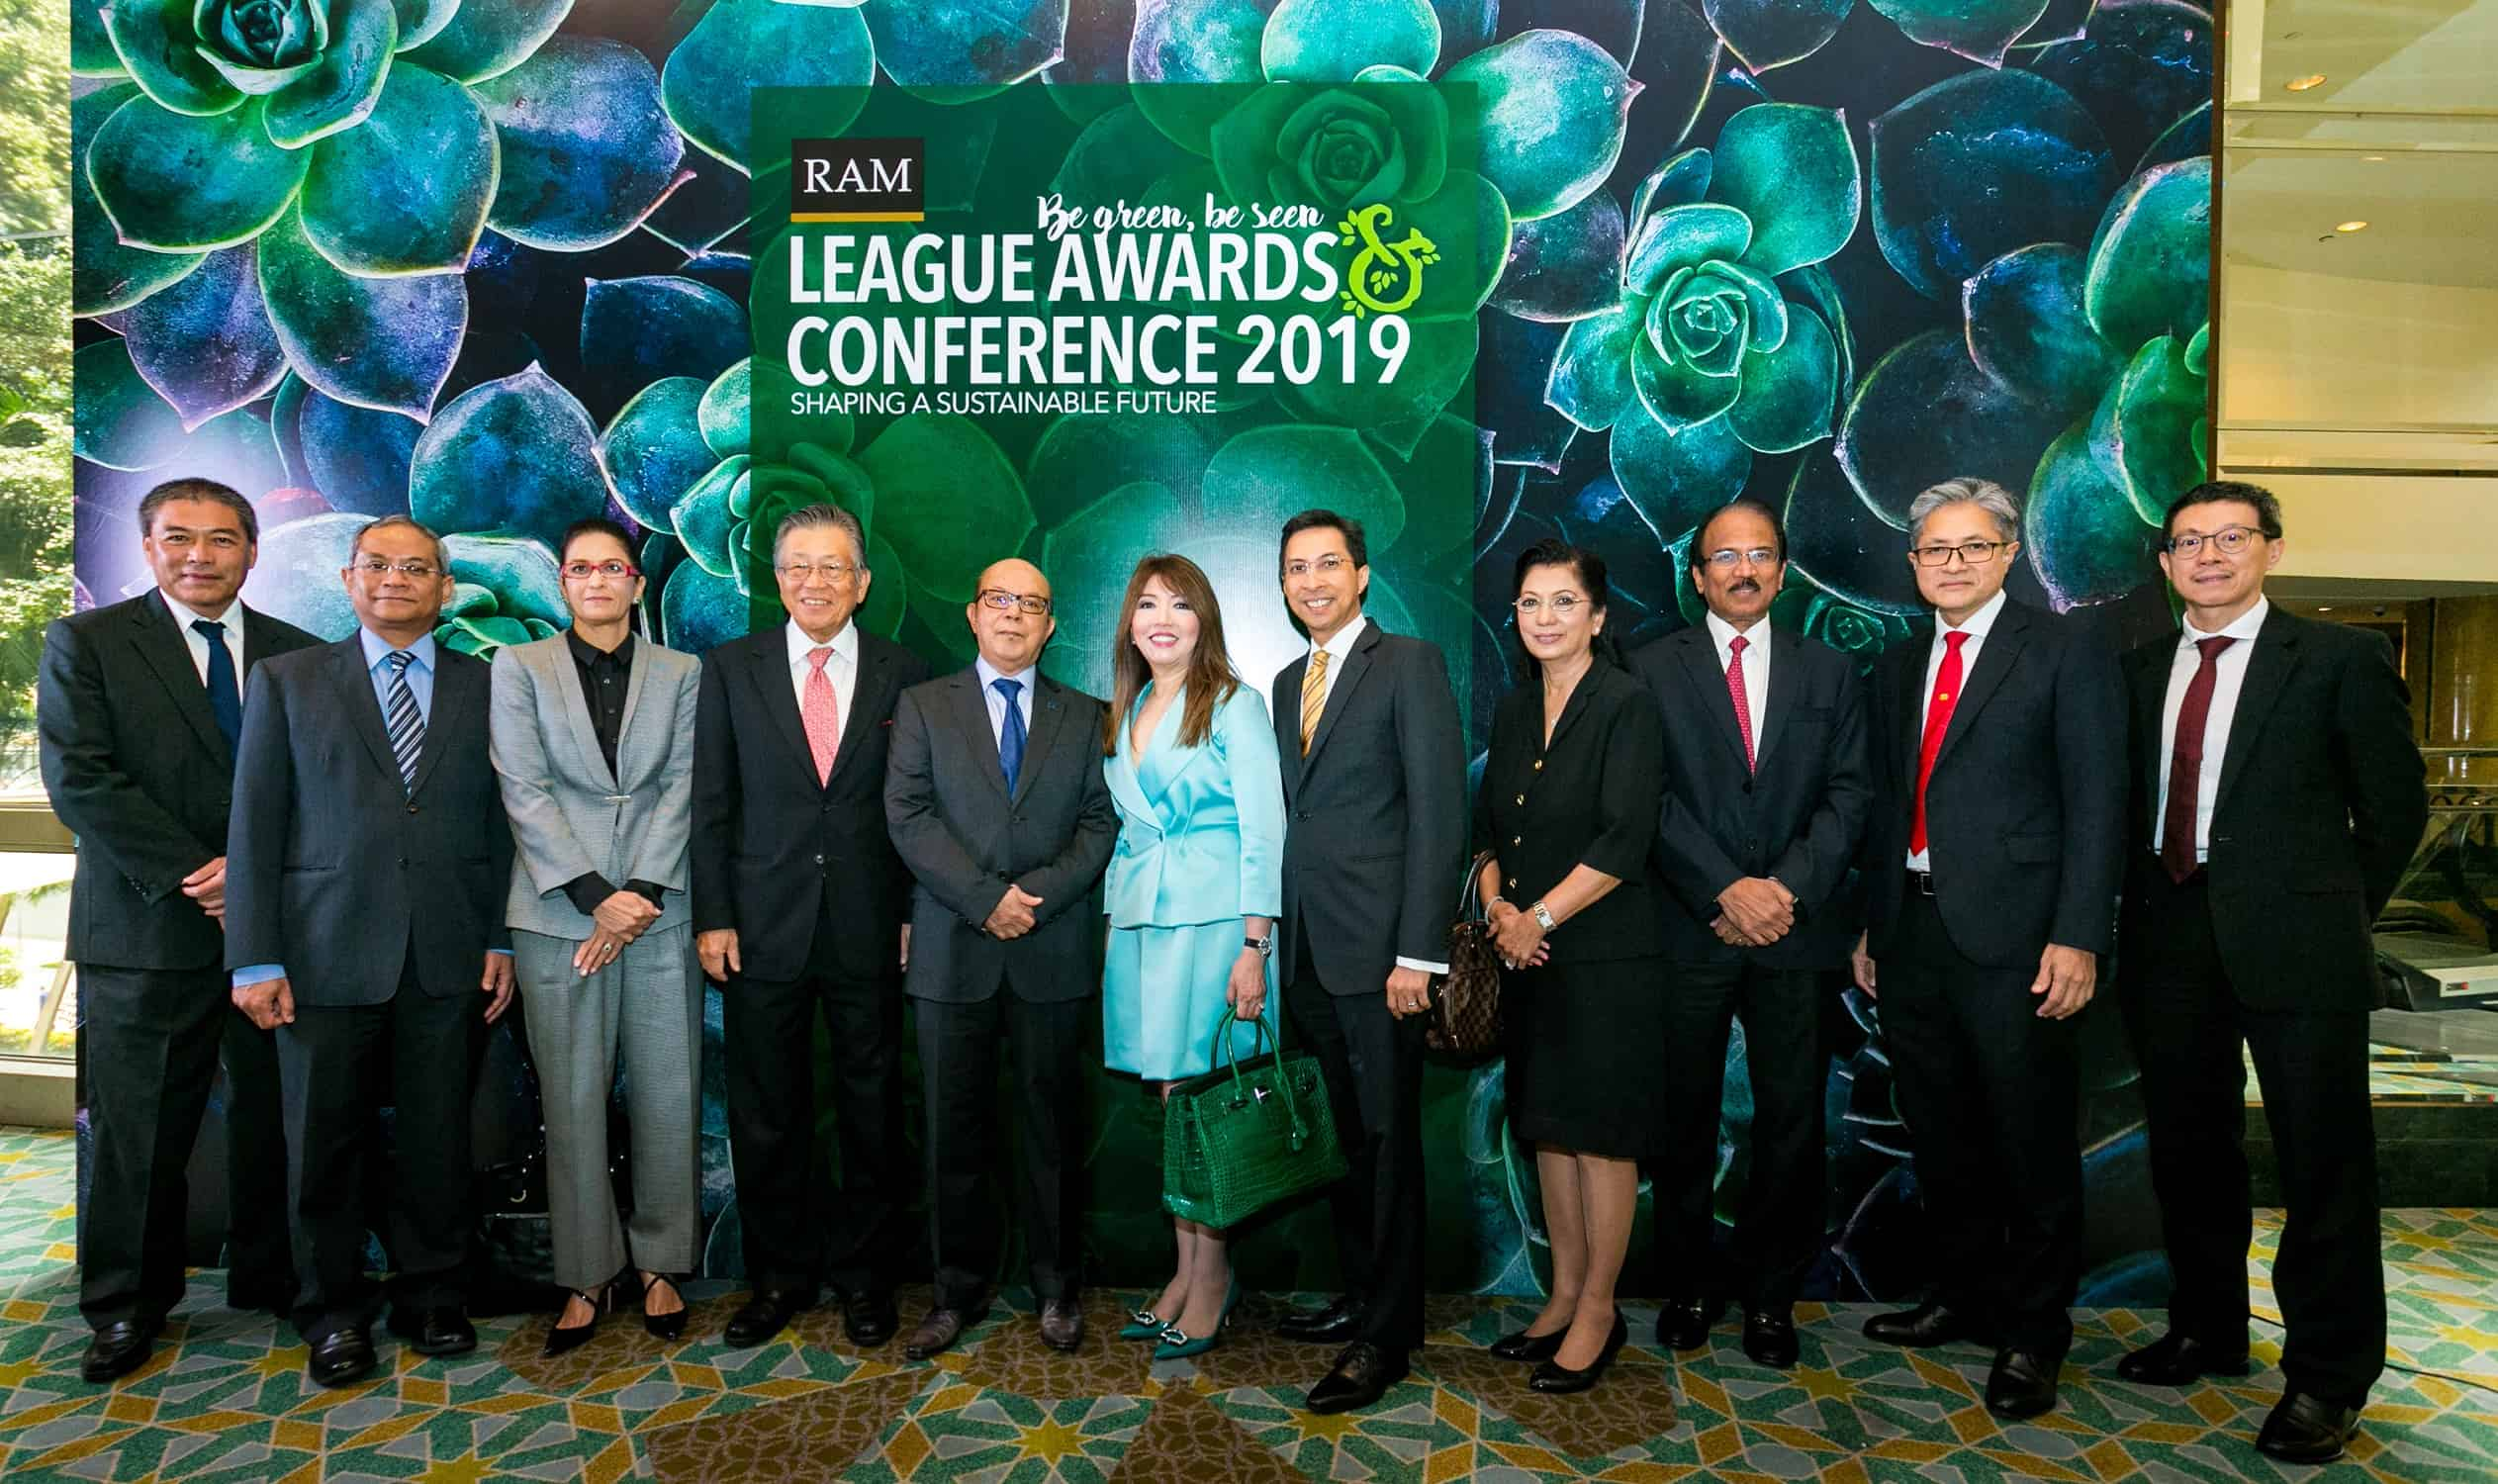 Malaysia's Best Financial Institutions and Corporates Celebrated at 16th Annual RAM League Awards